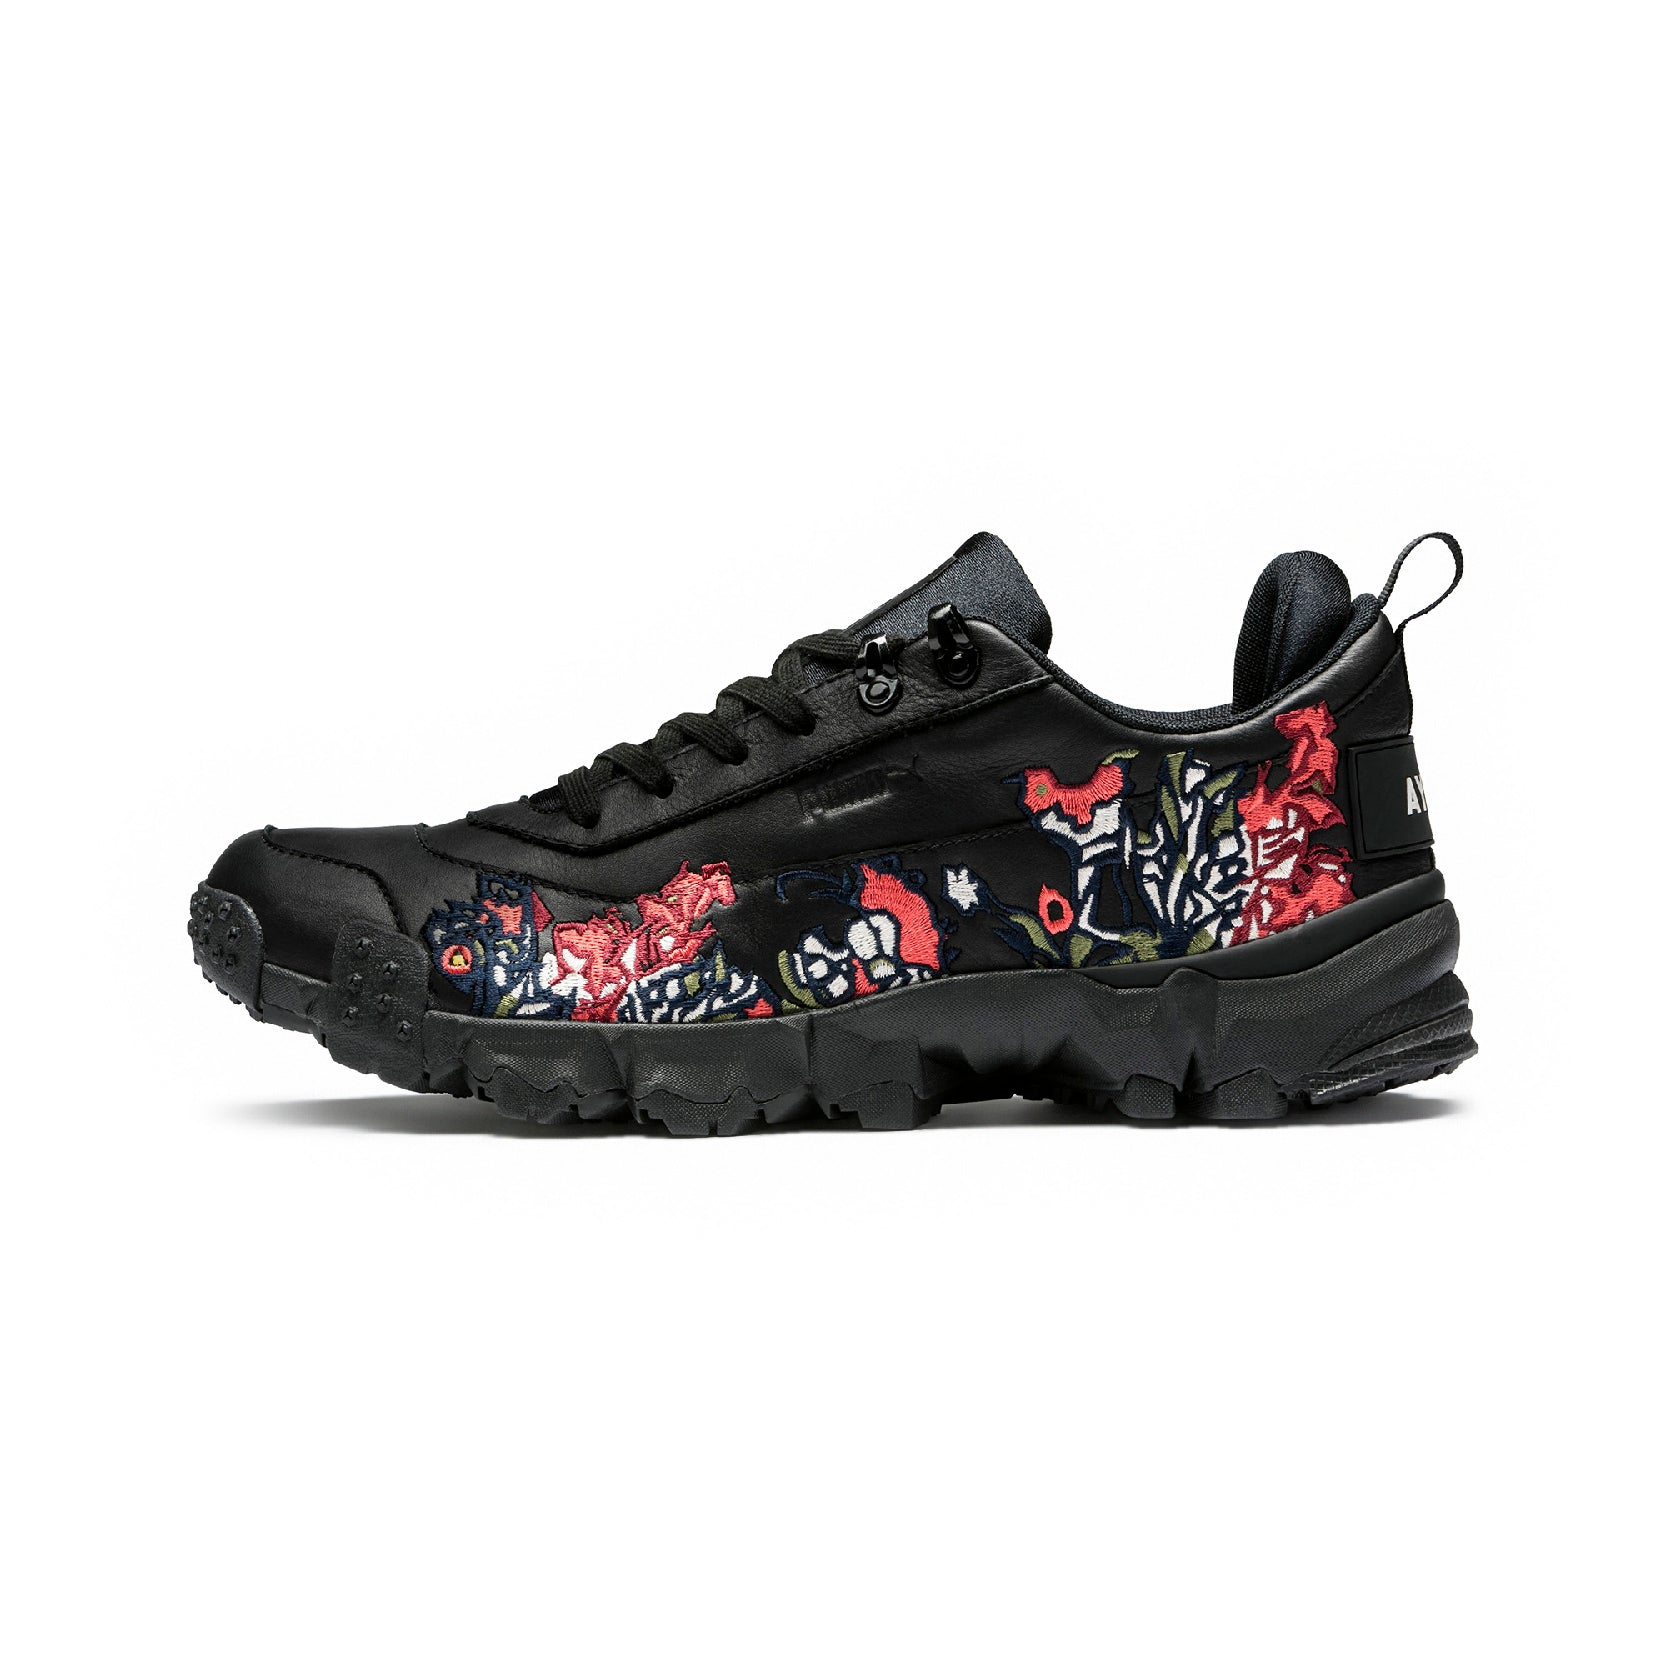 PUMA | Outlaw Moscow Trailfox Black